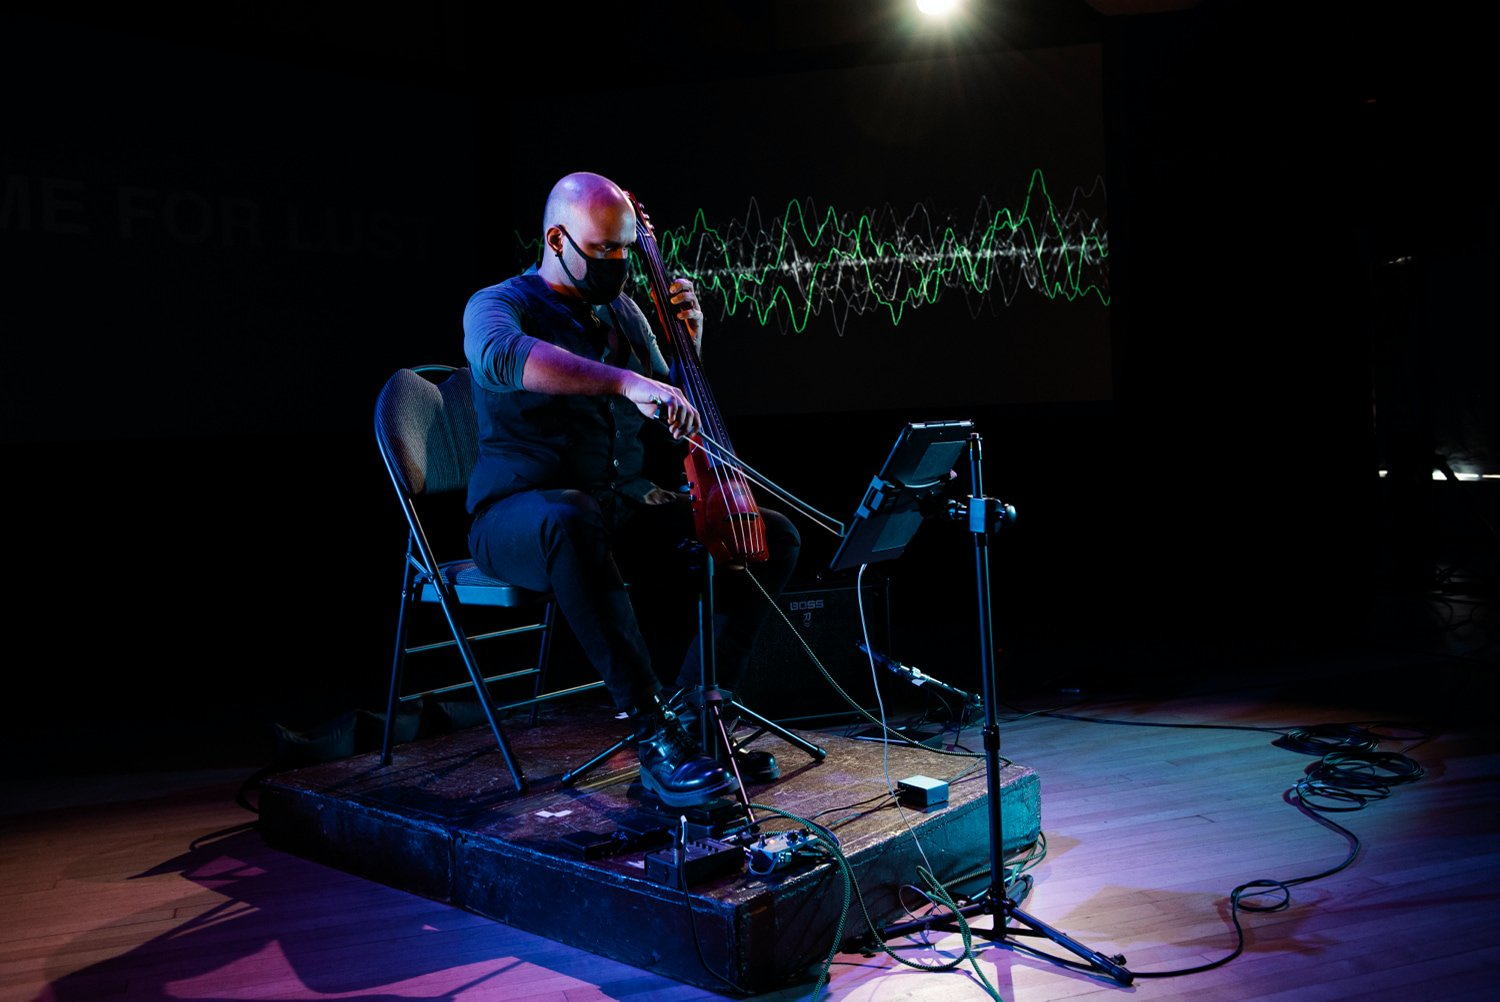 A musician plays an electric cello while seated in front of a projected representation of an audio wave.